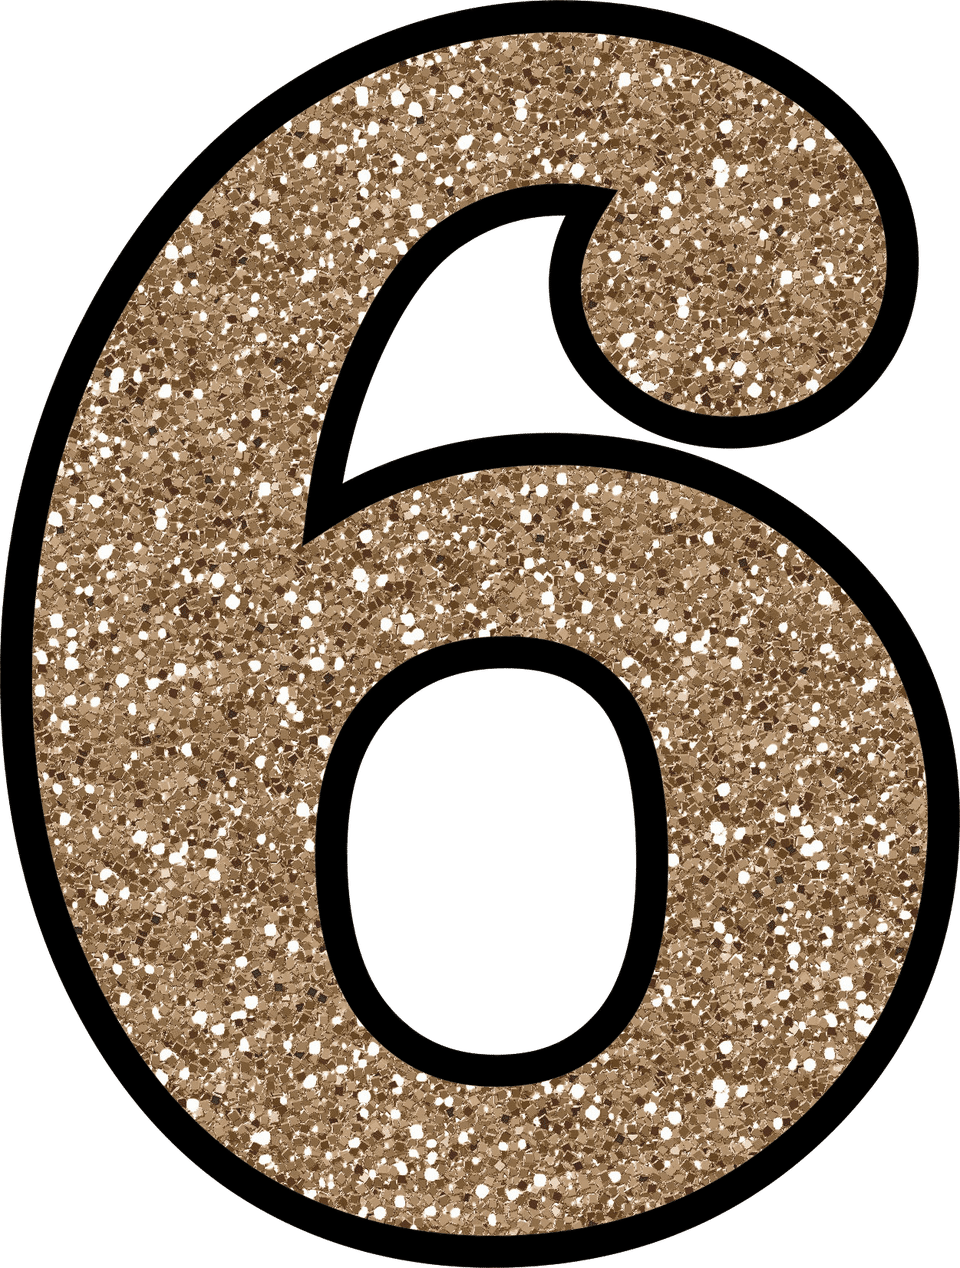 Glitter Without The Mess! Free Digital Printable Glitter Numbers 0 - 9